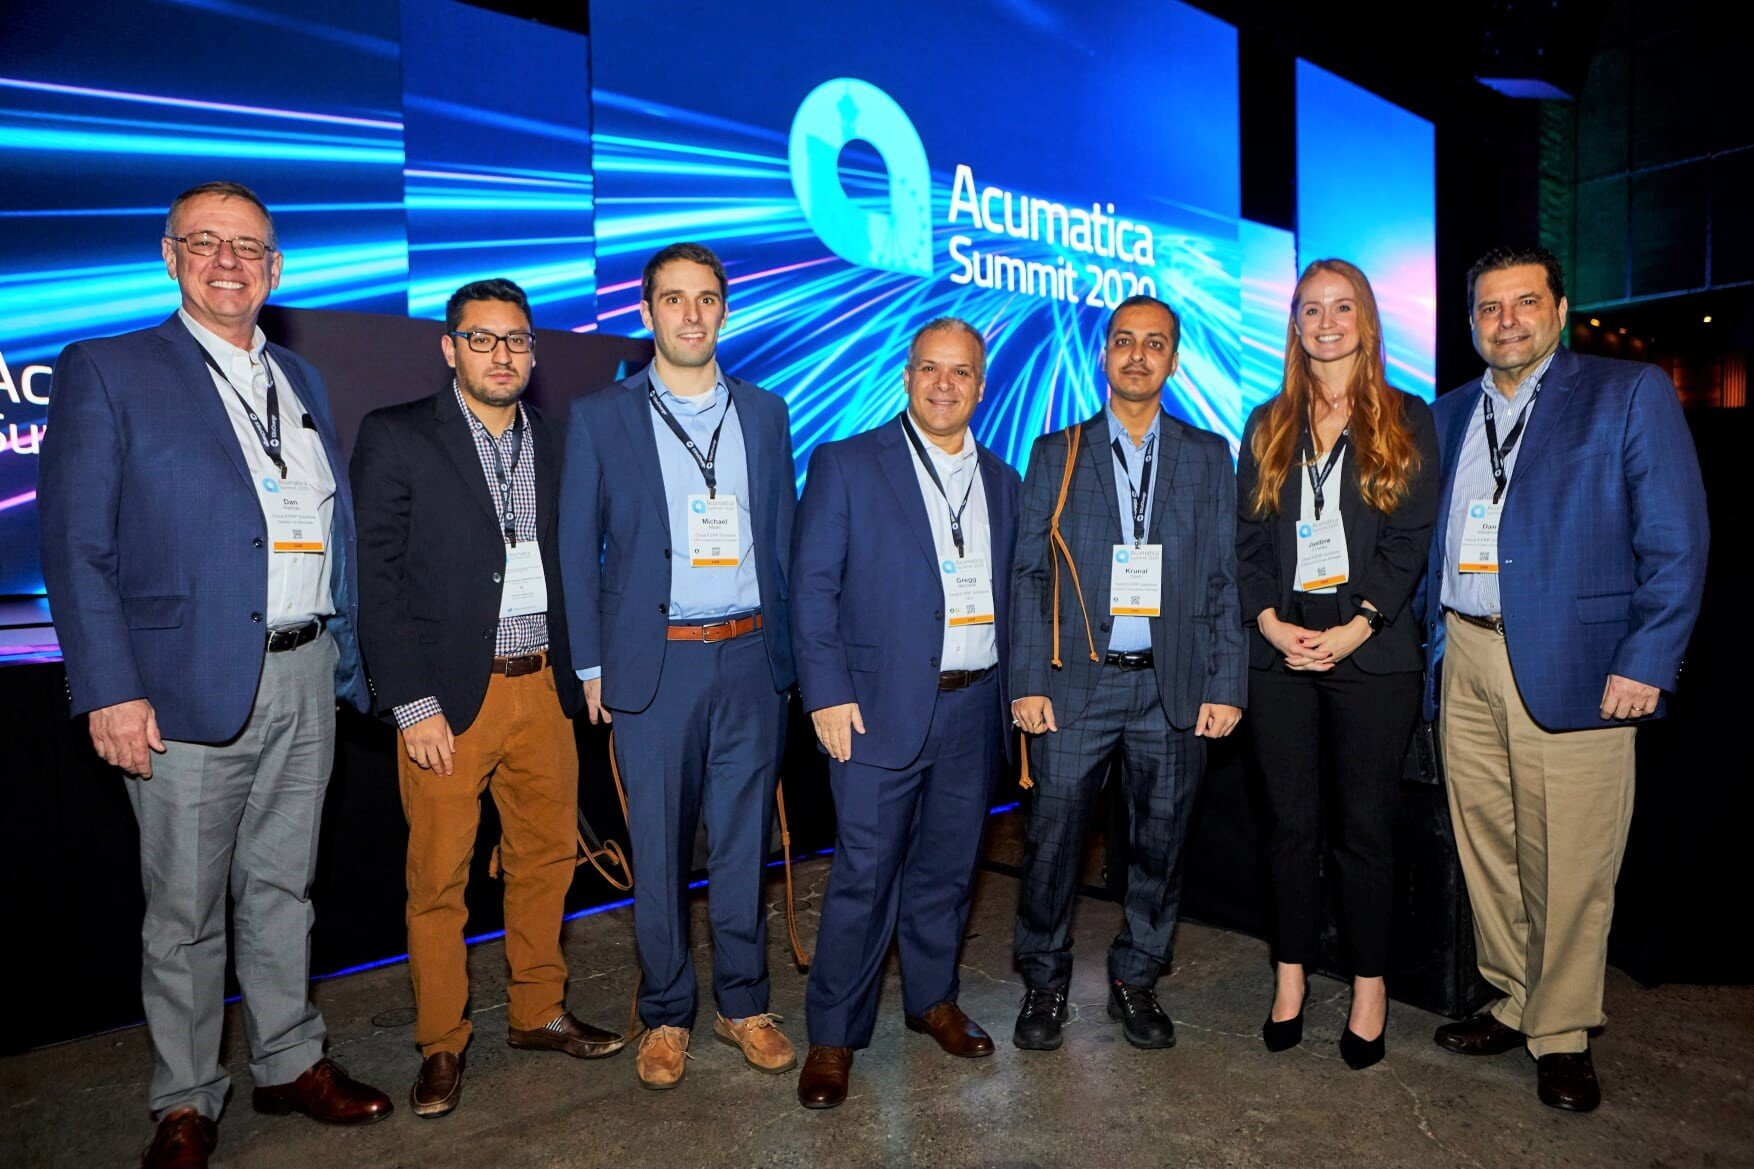 Acumatica Summit 2020 Cloud 9 ERP Solutions